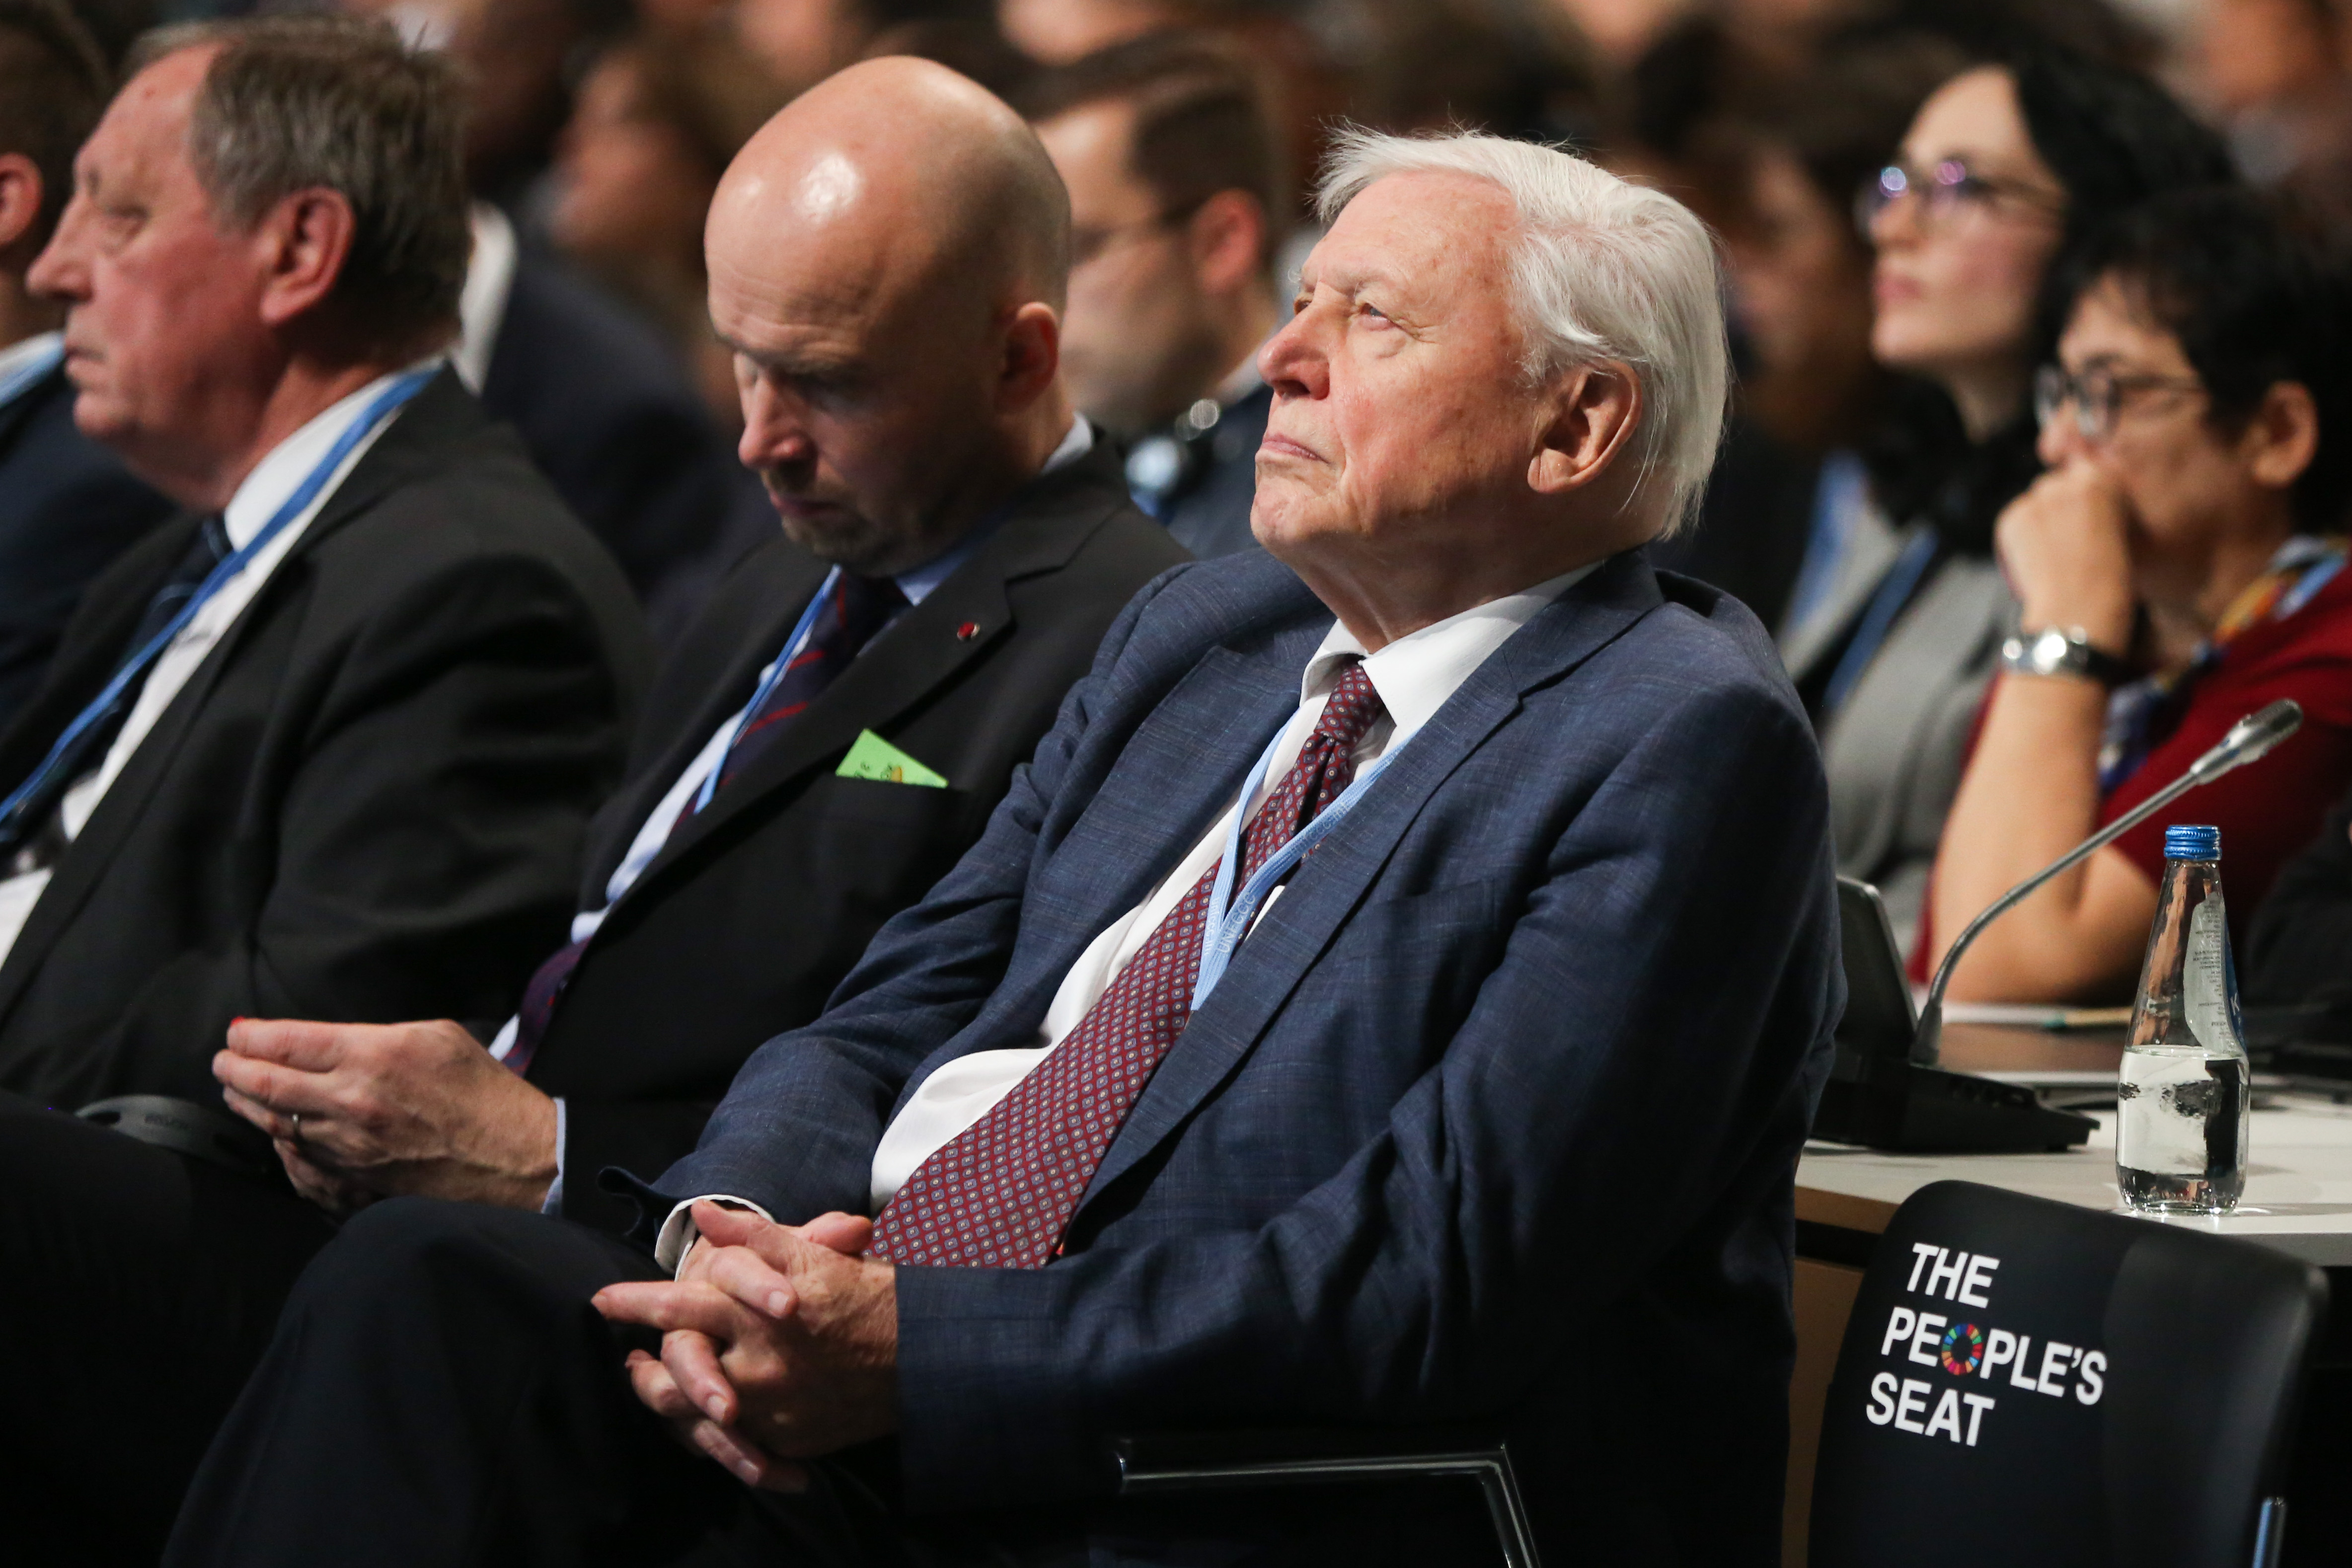 Sir David Attenborough during the opening ceremony of COP24